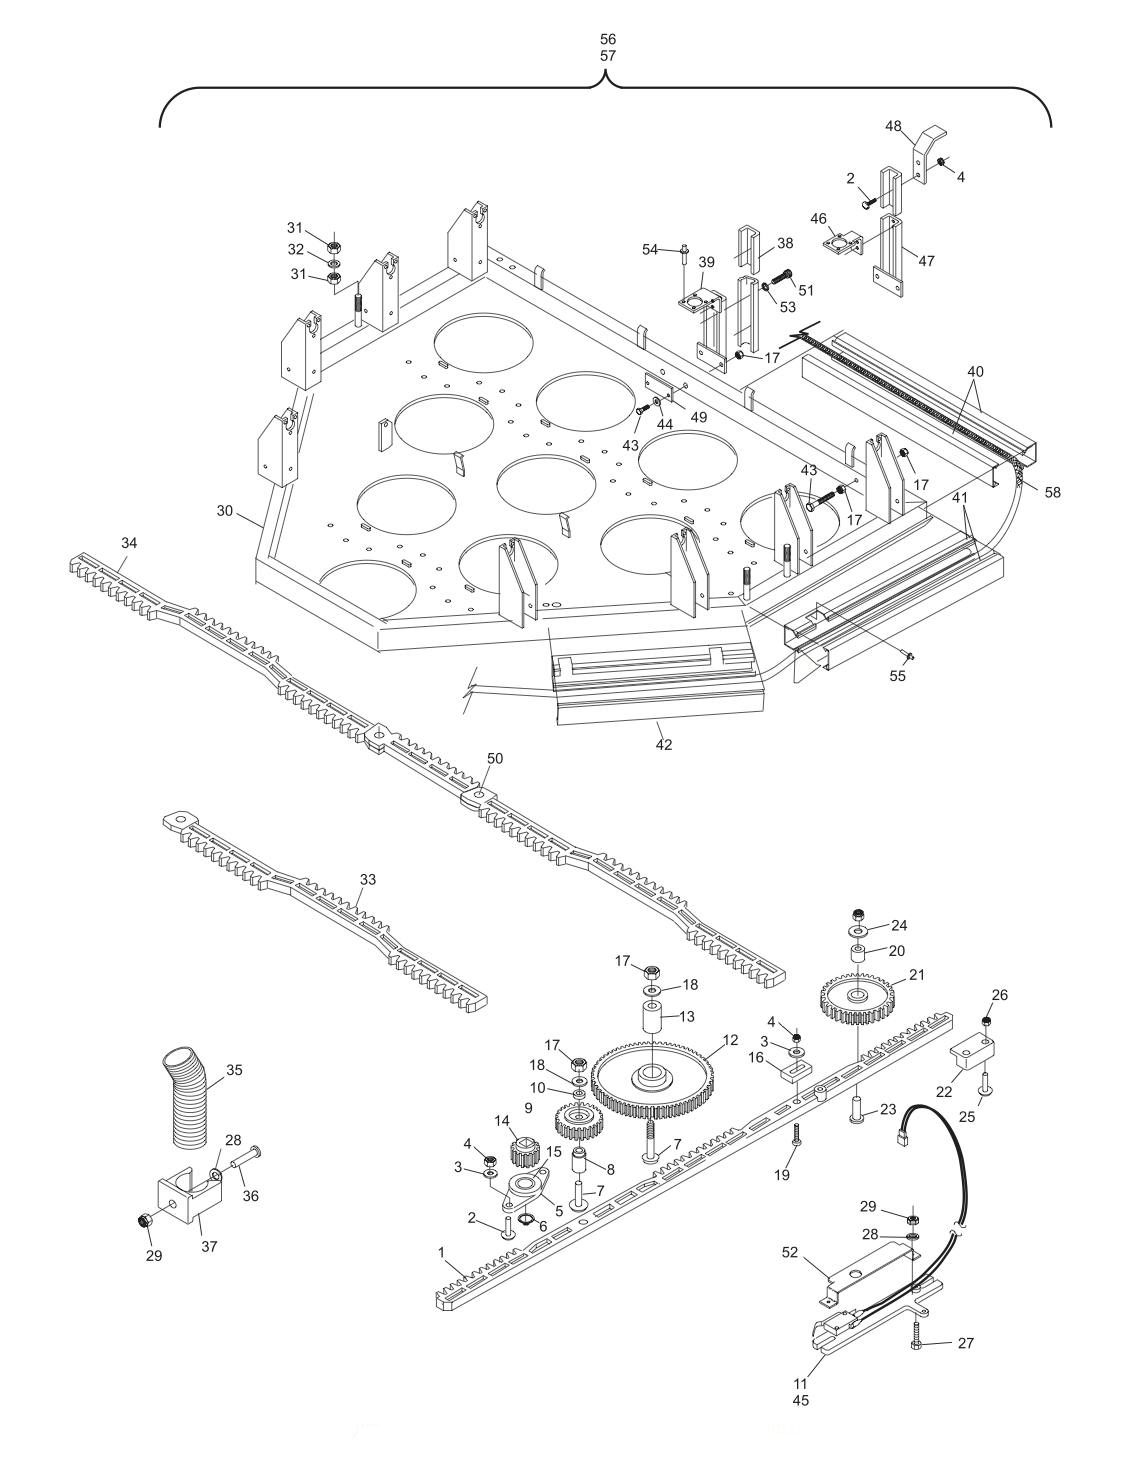 GS-10 - GS-98 Setting Table and Gears